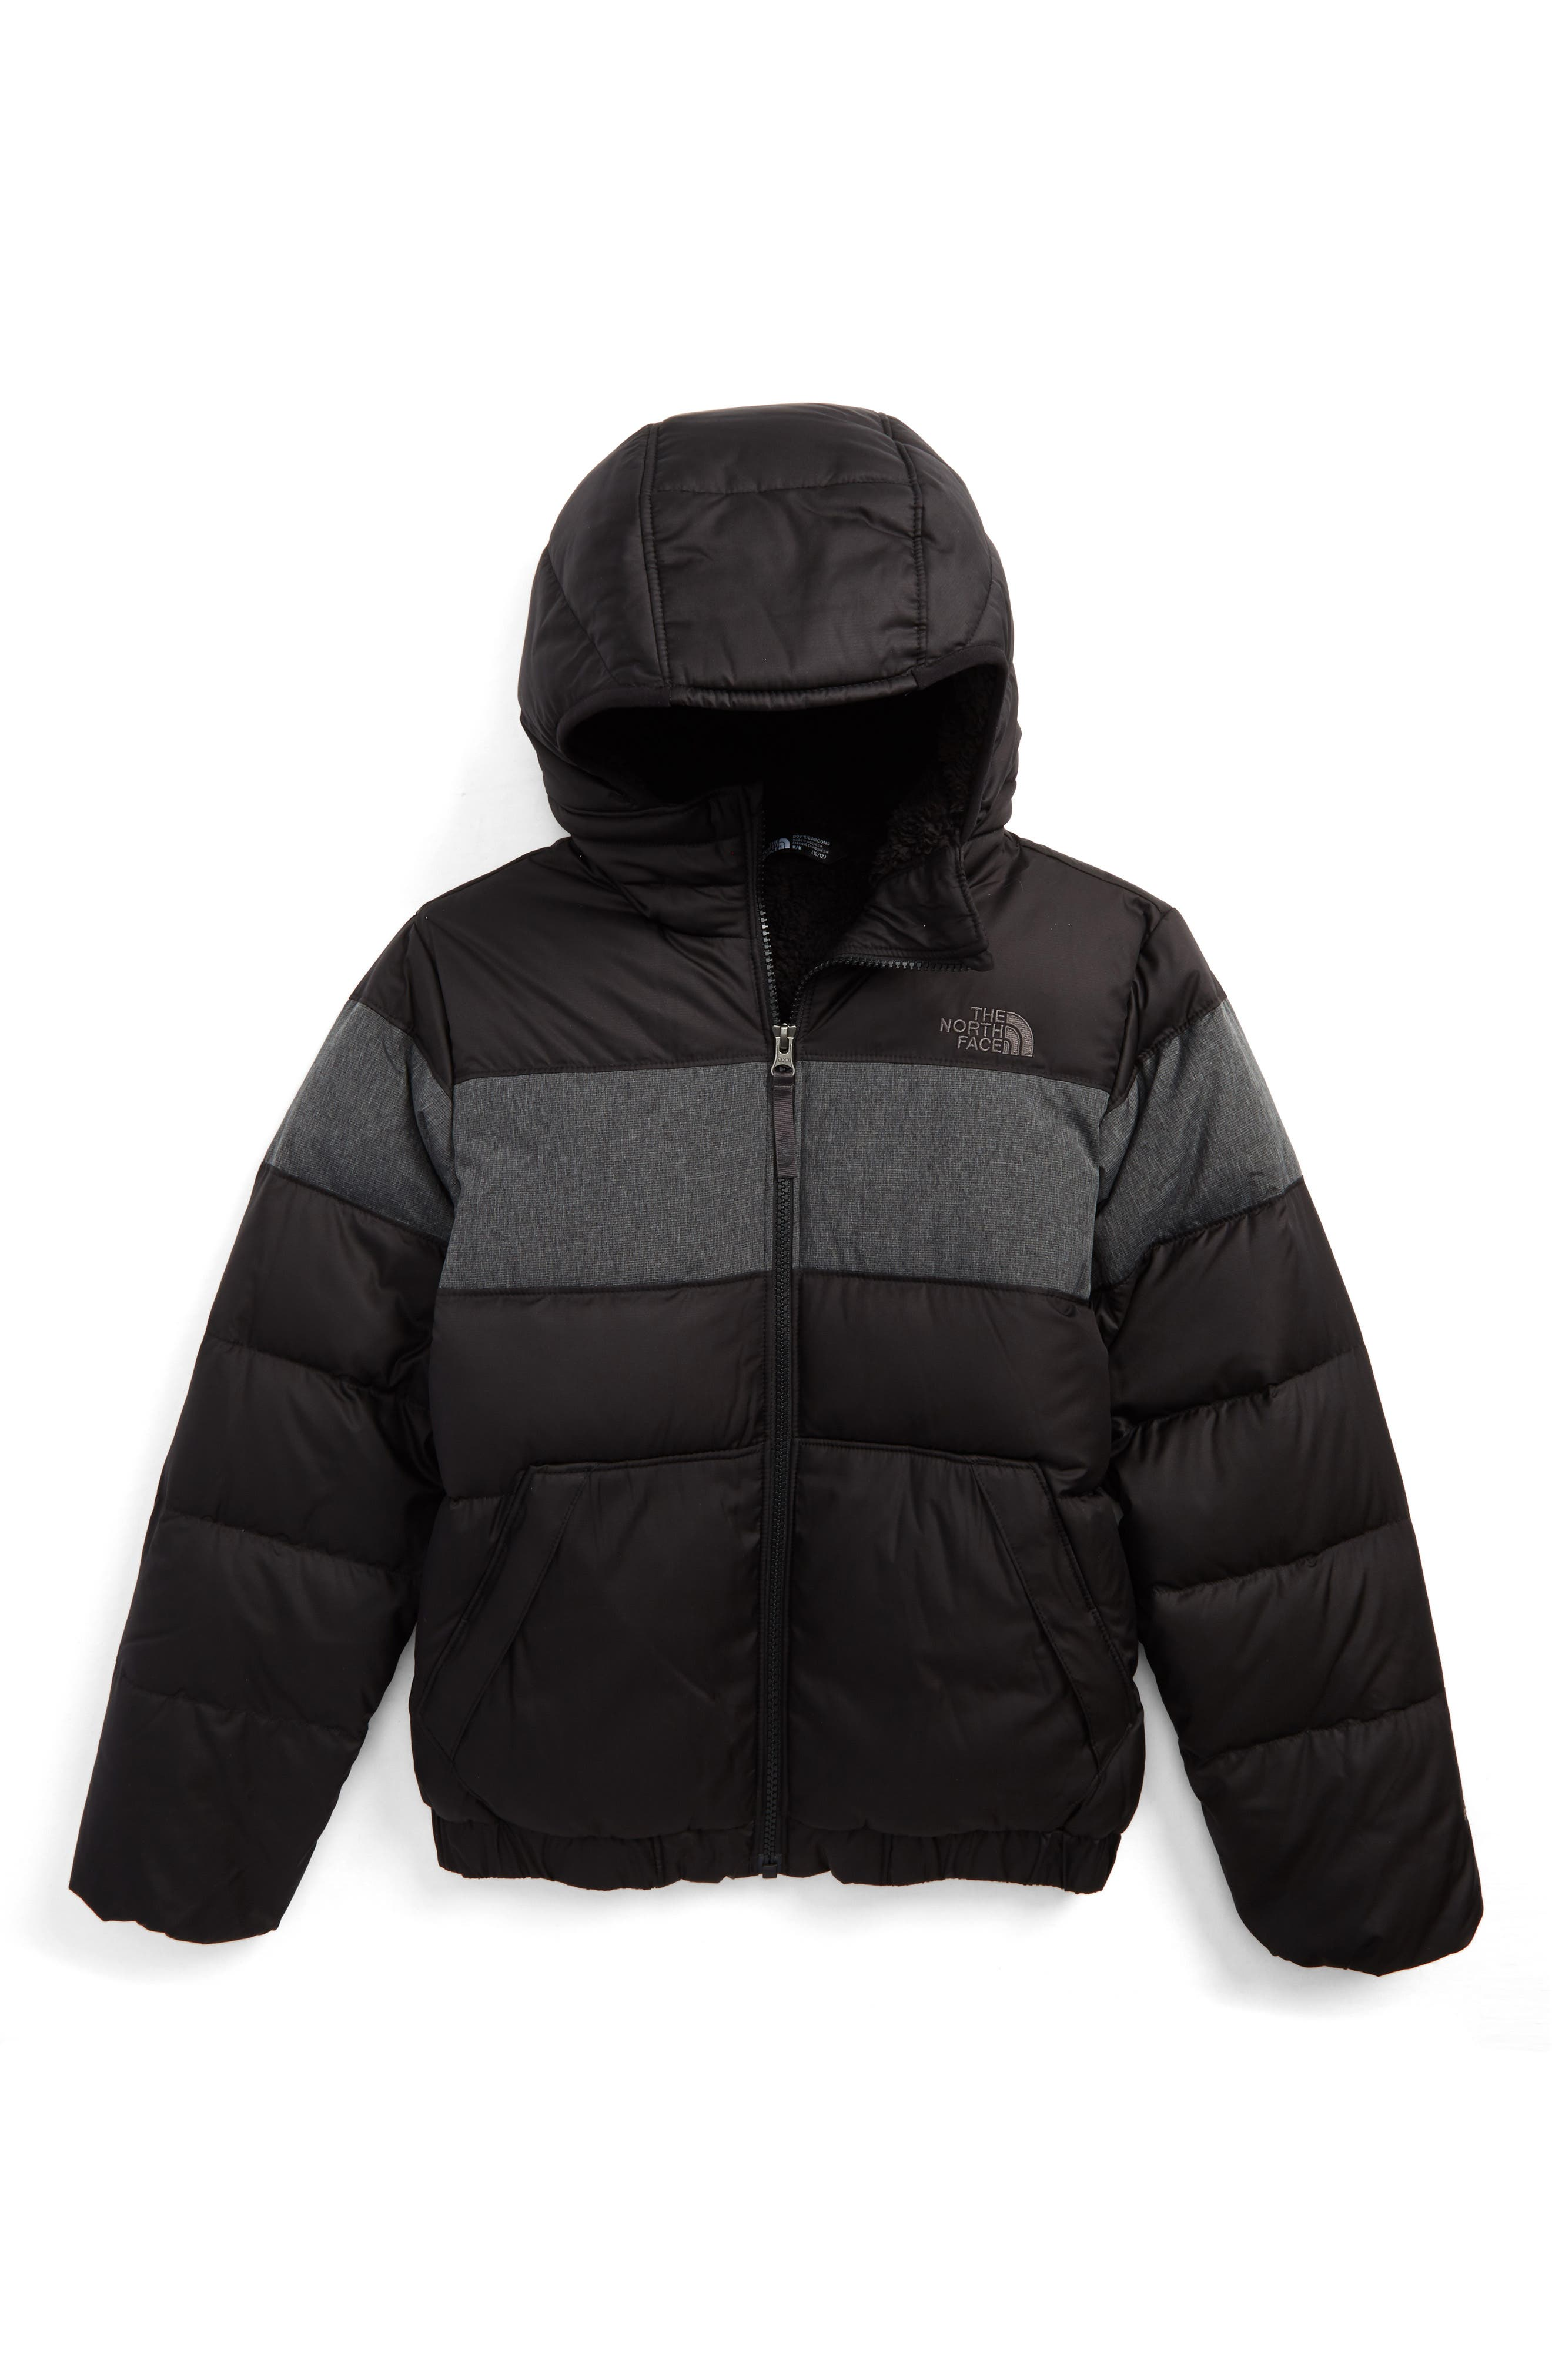 Alternate Image 1 Selected - The North Face Moondoggy 2.0 Water Repellent Down Jacket (Big Boys)